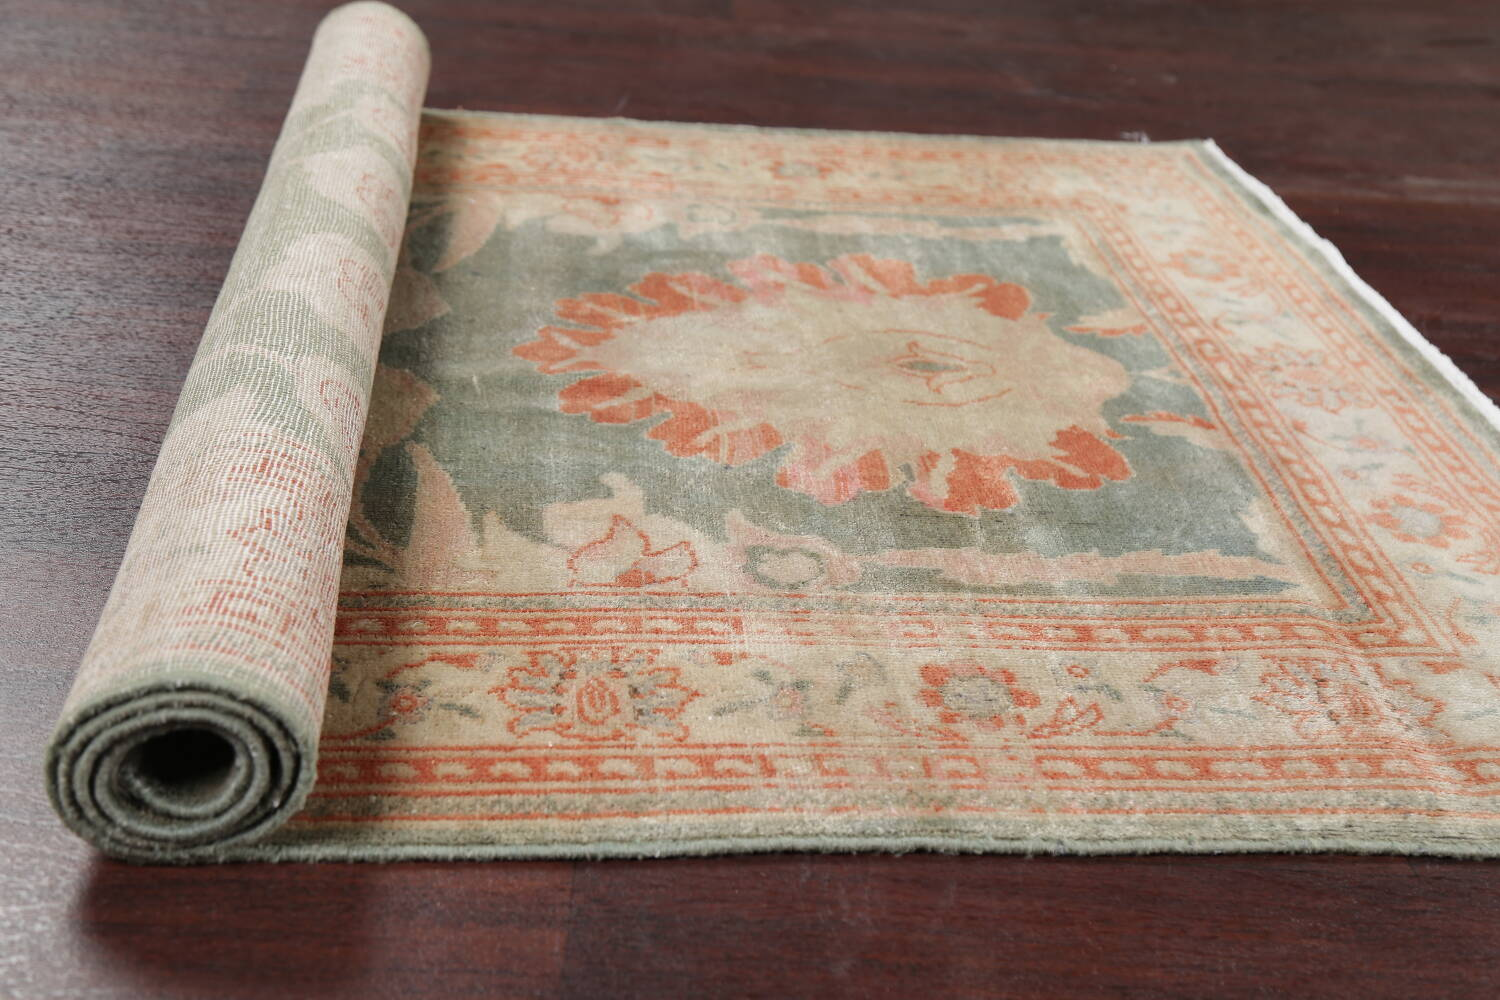 Floral Green Oushak Egyptian Area Rug 4x6 image 19